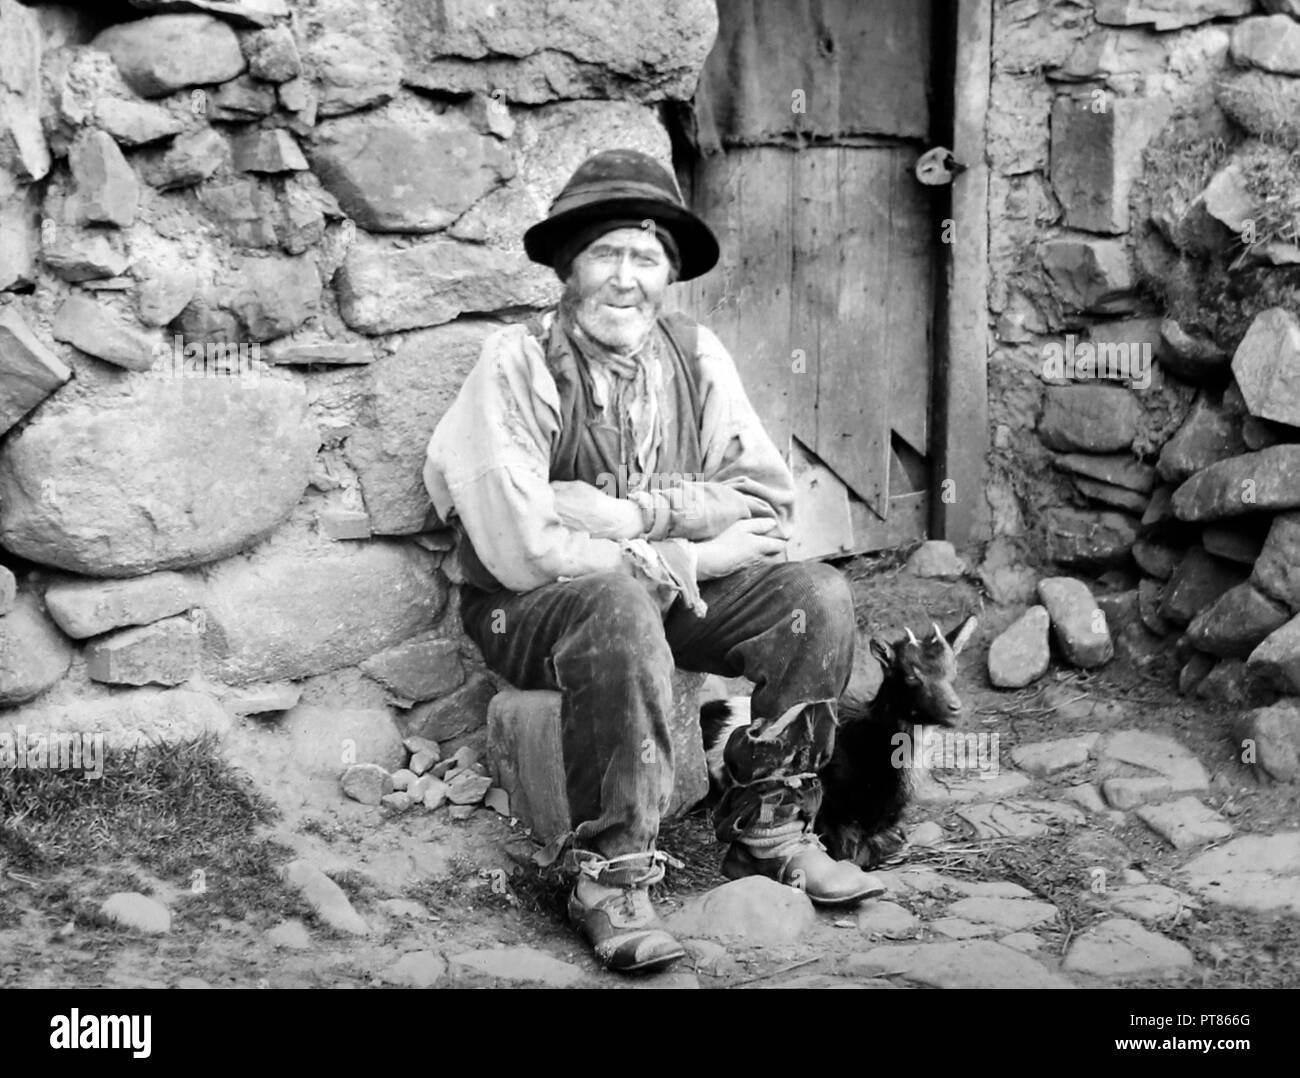 Tenant of a mountain farm, West of Ireland, early 1900s - Stock Image